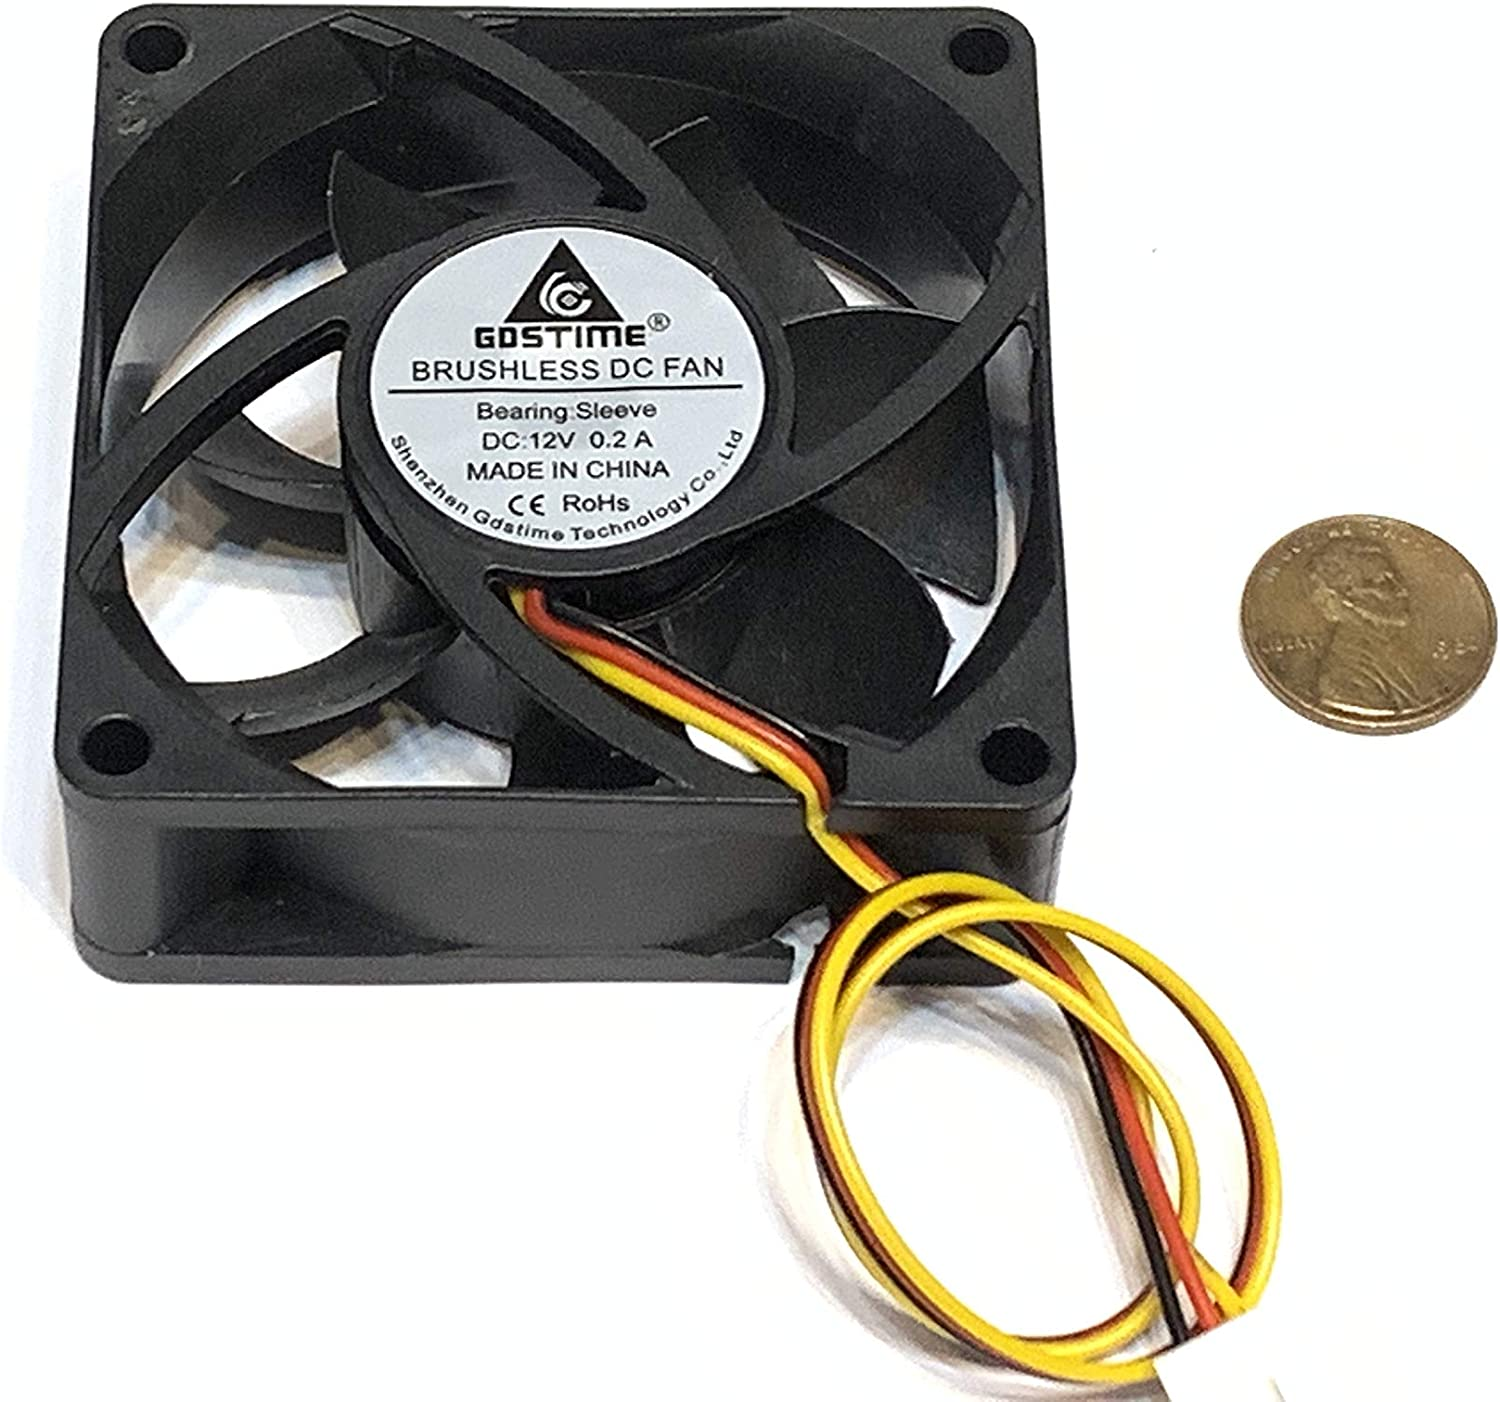 4 pieces 7025 GDStime 7cm 70mm DC 12v Brushless Cooling 3pin Blower Fan A34